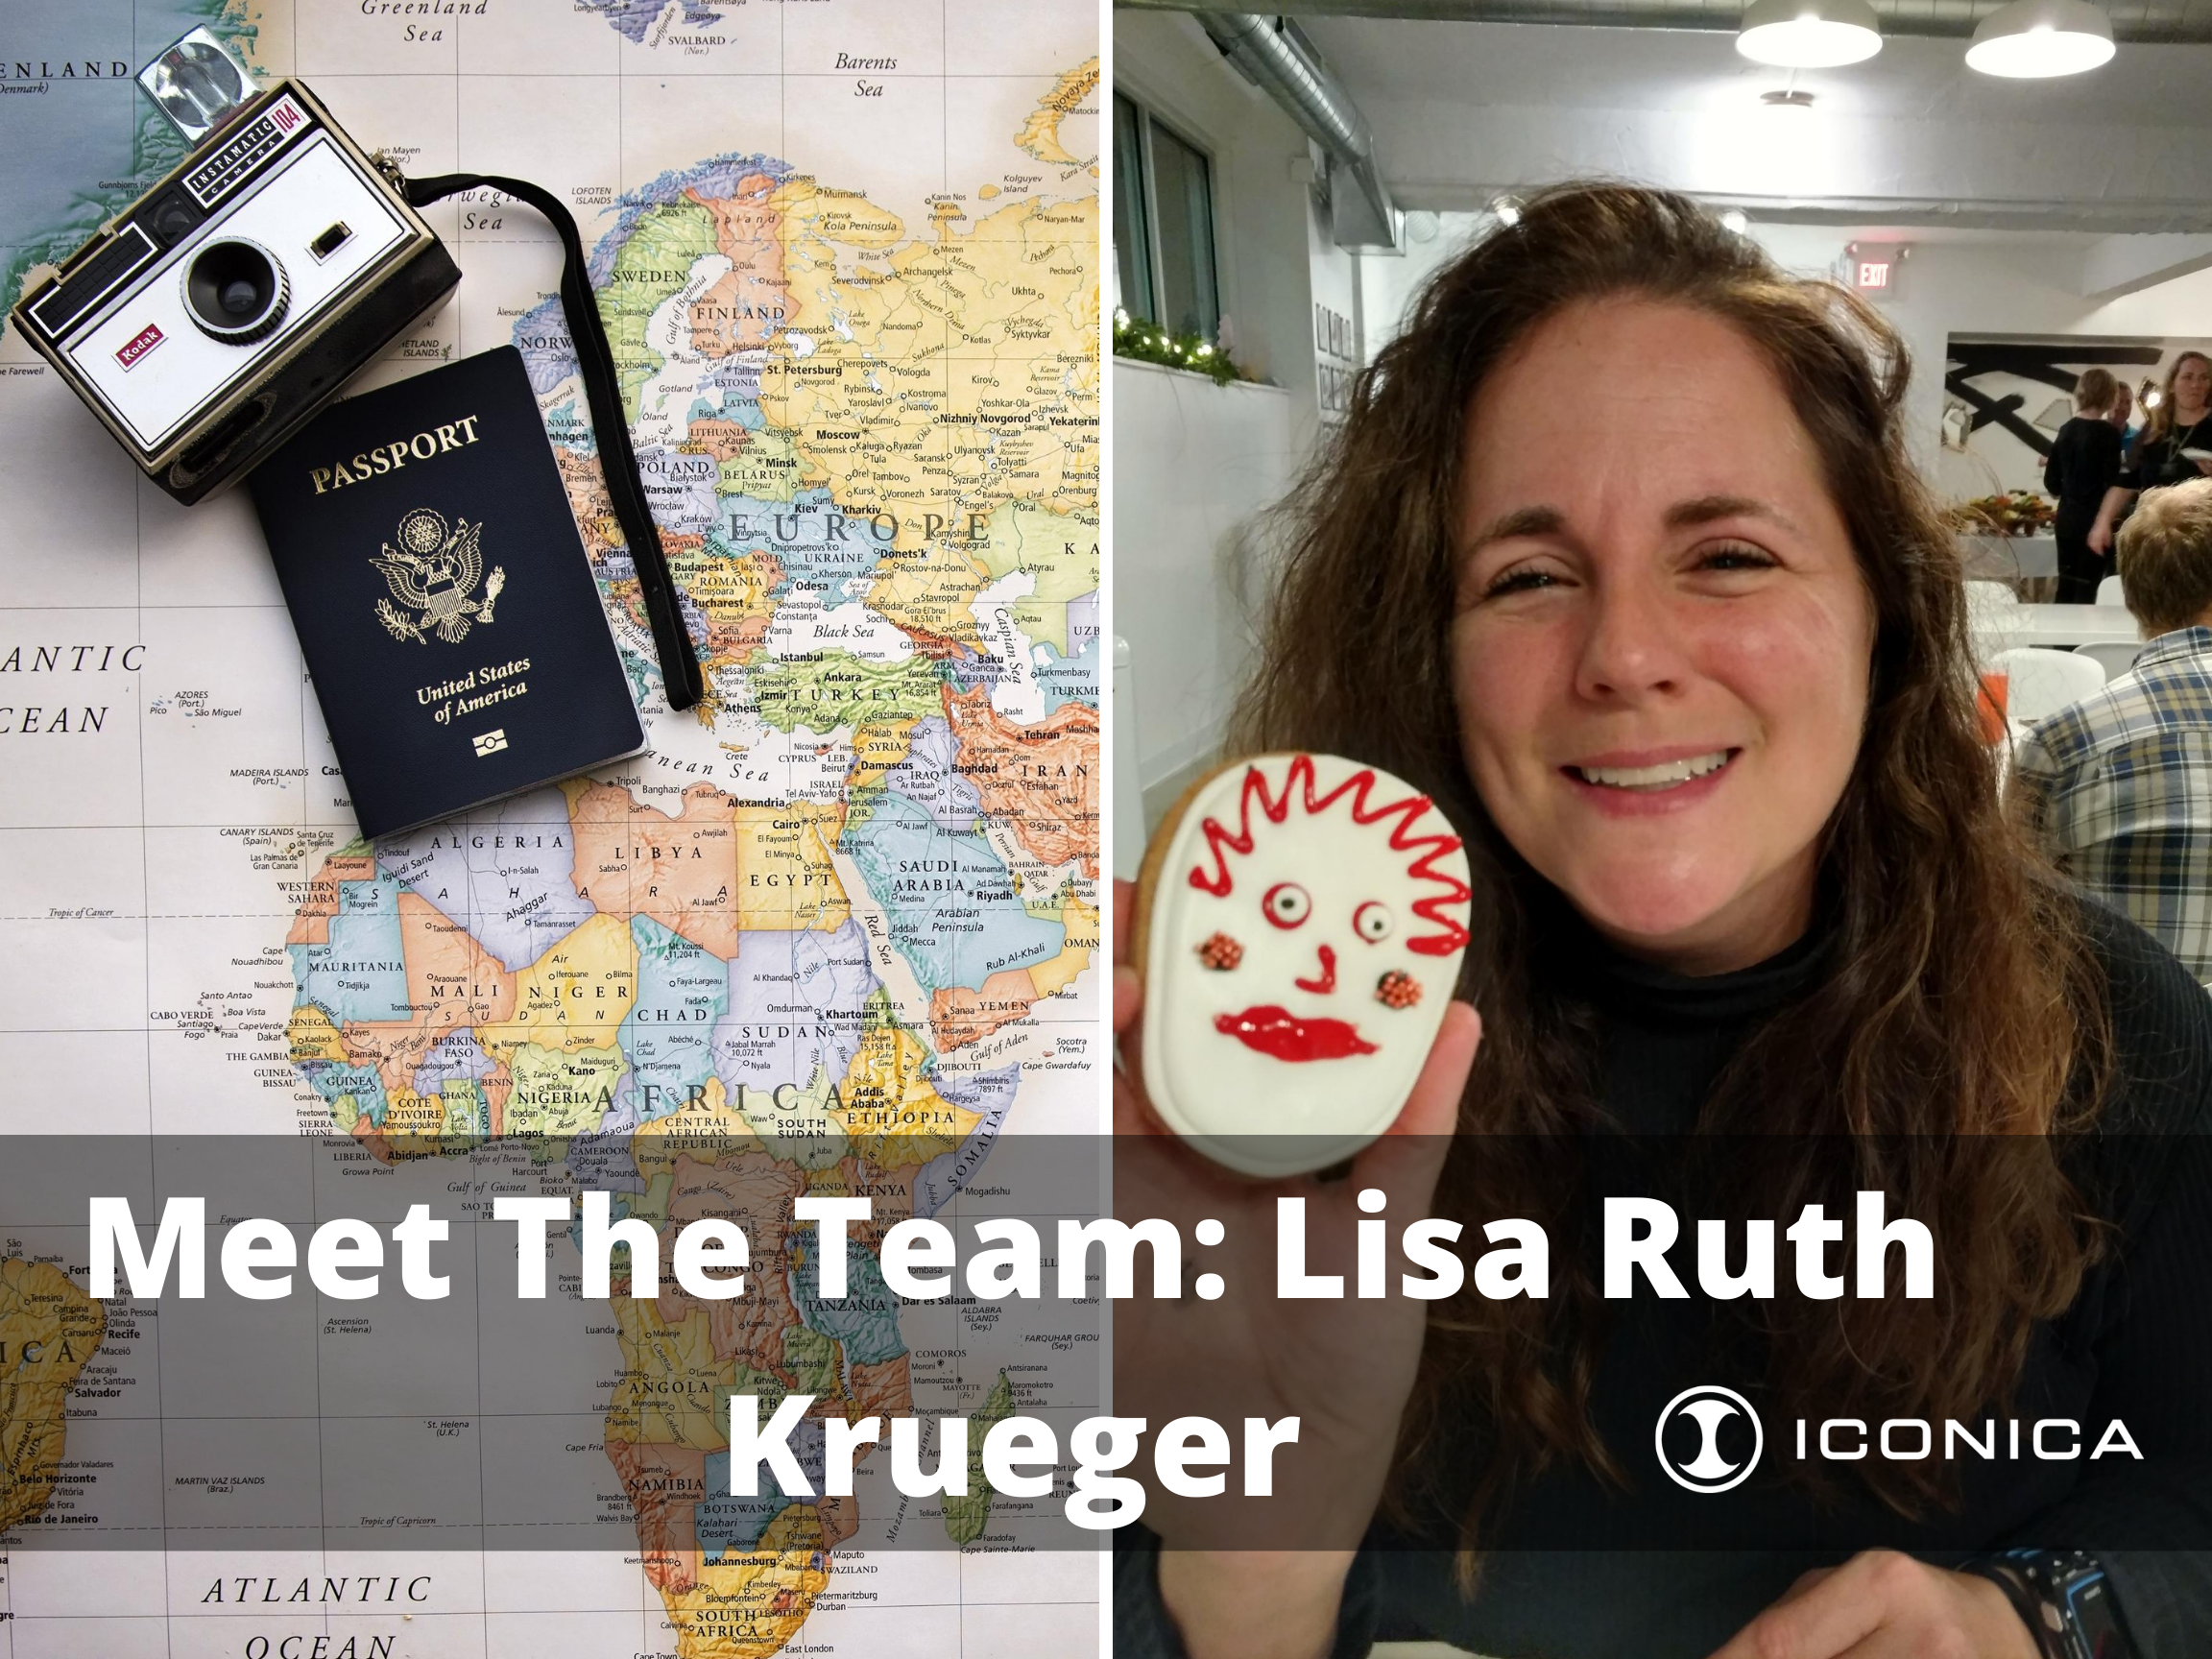 Meet Lisa Ruth Krueger